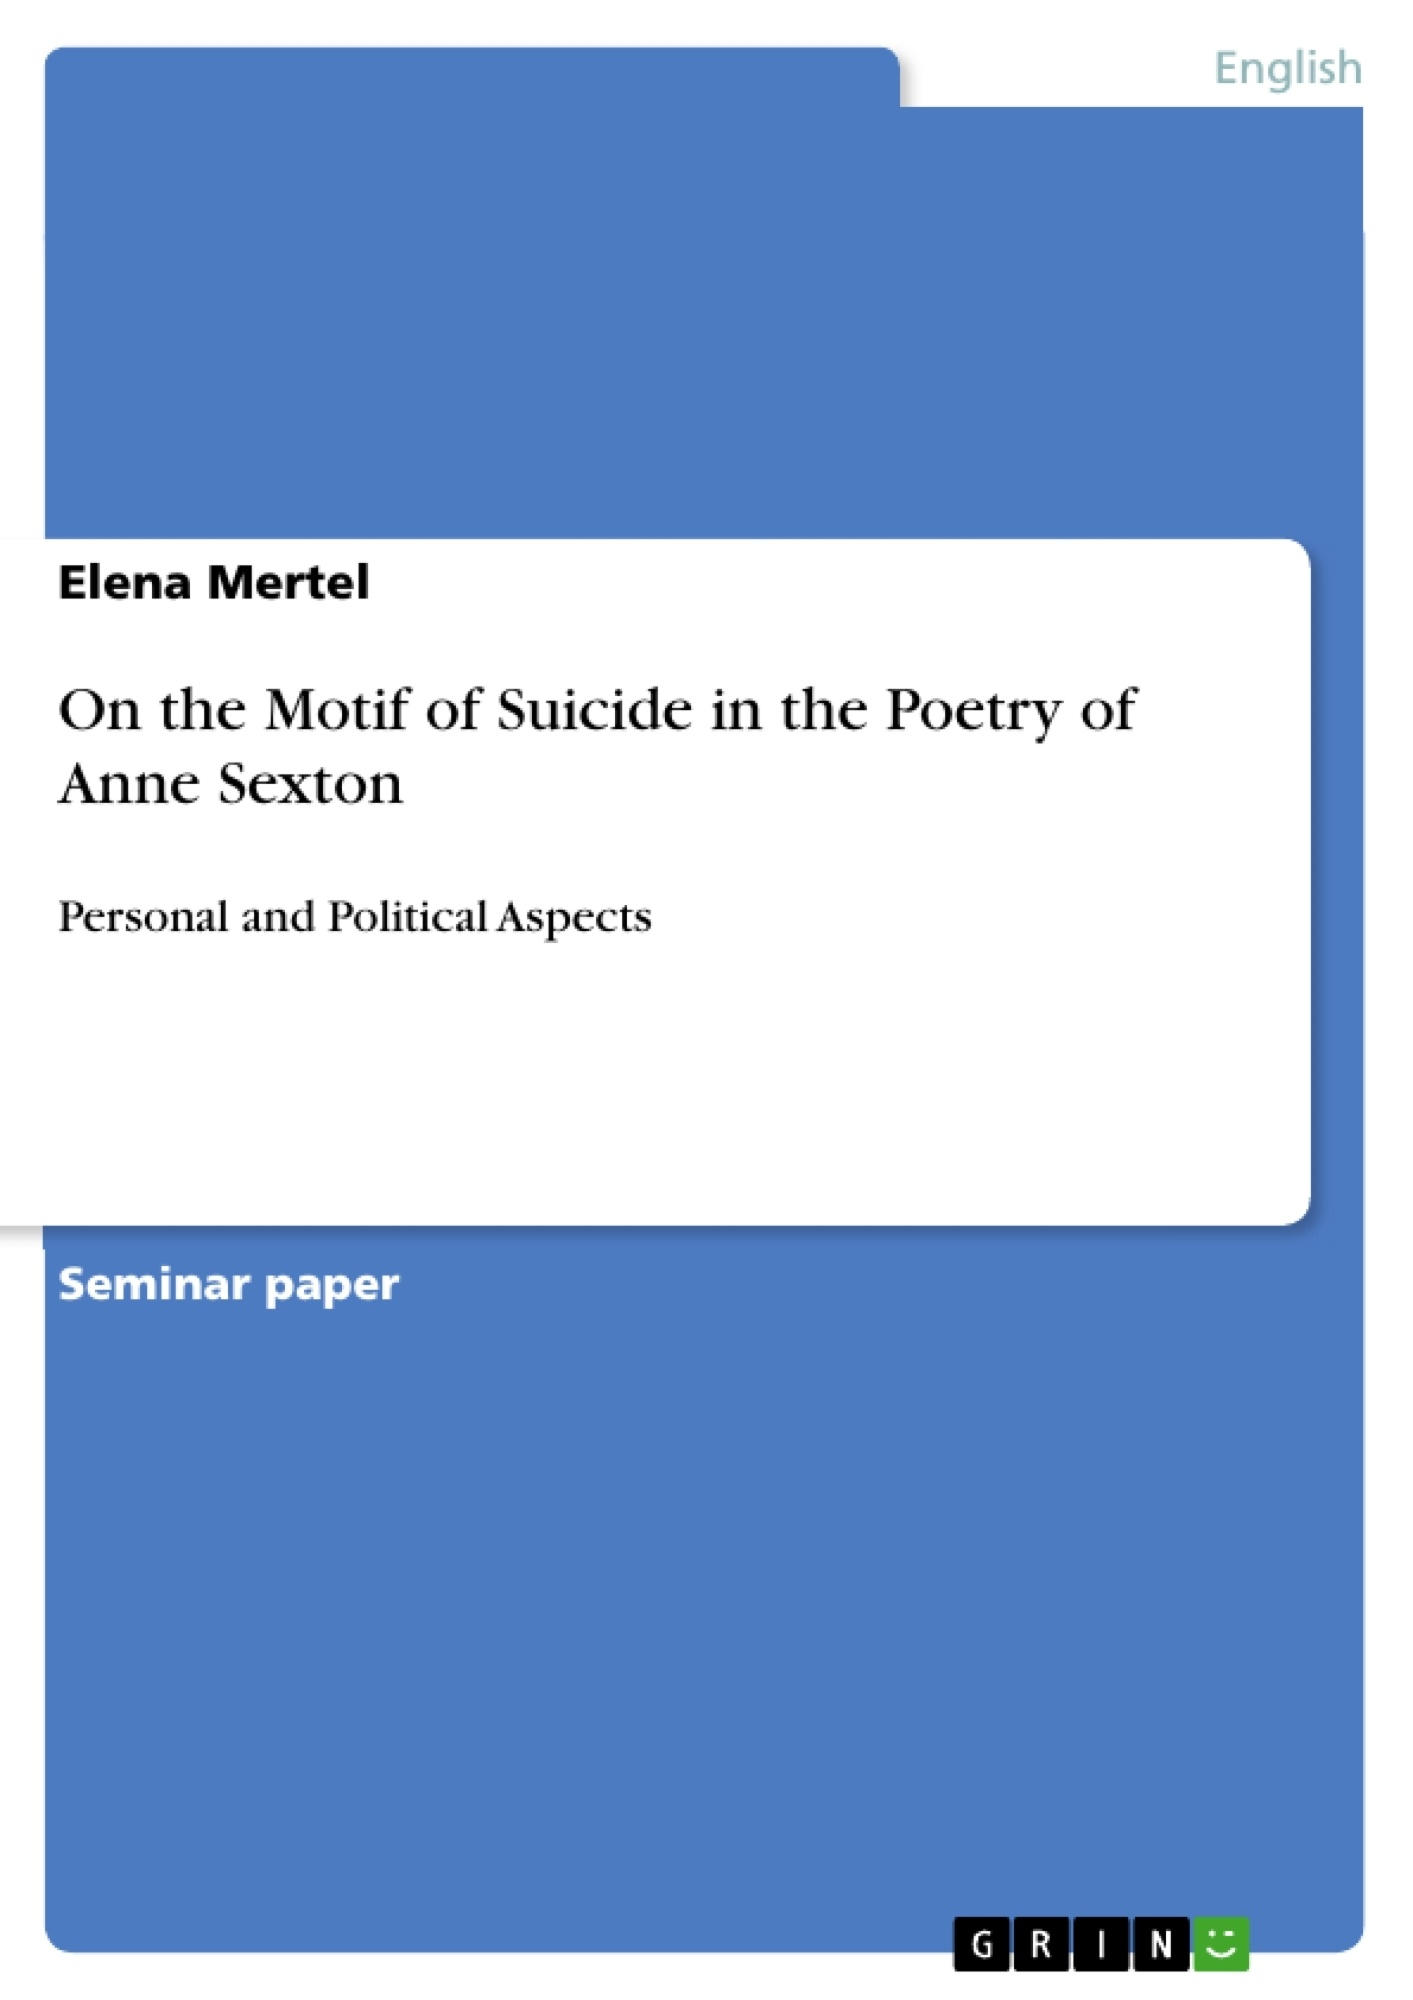 Title: On the Motif of Suicide in the Poetry of Anne Sexton